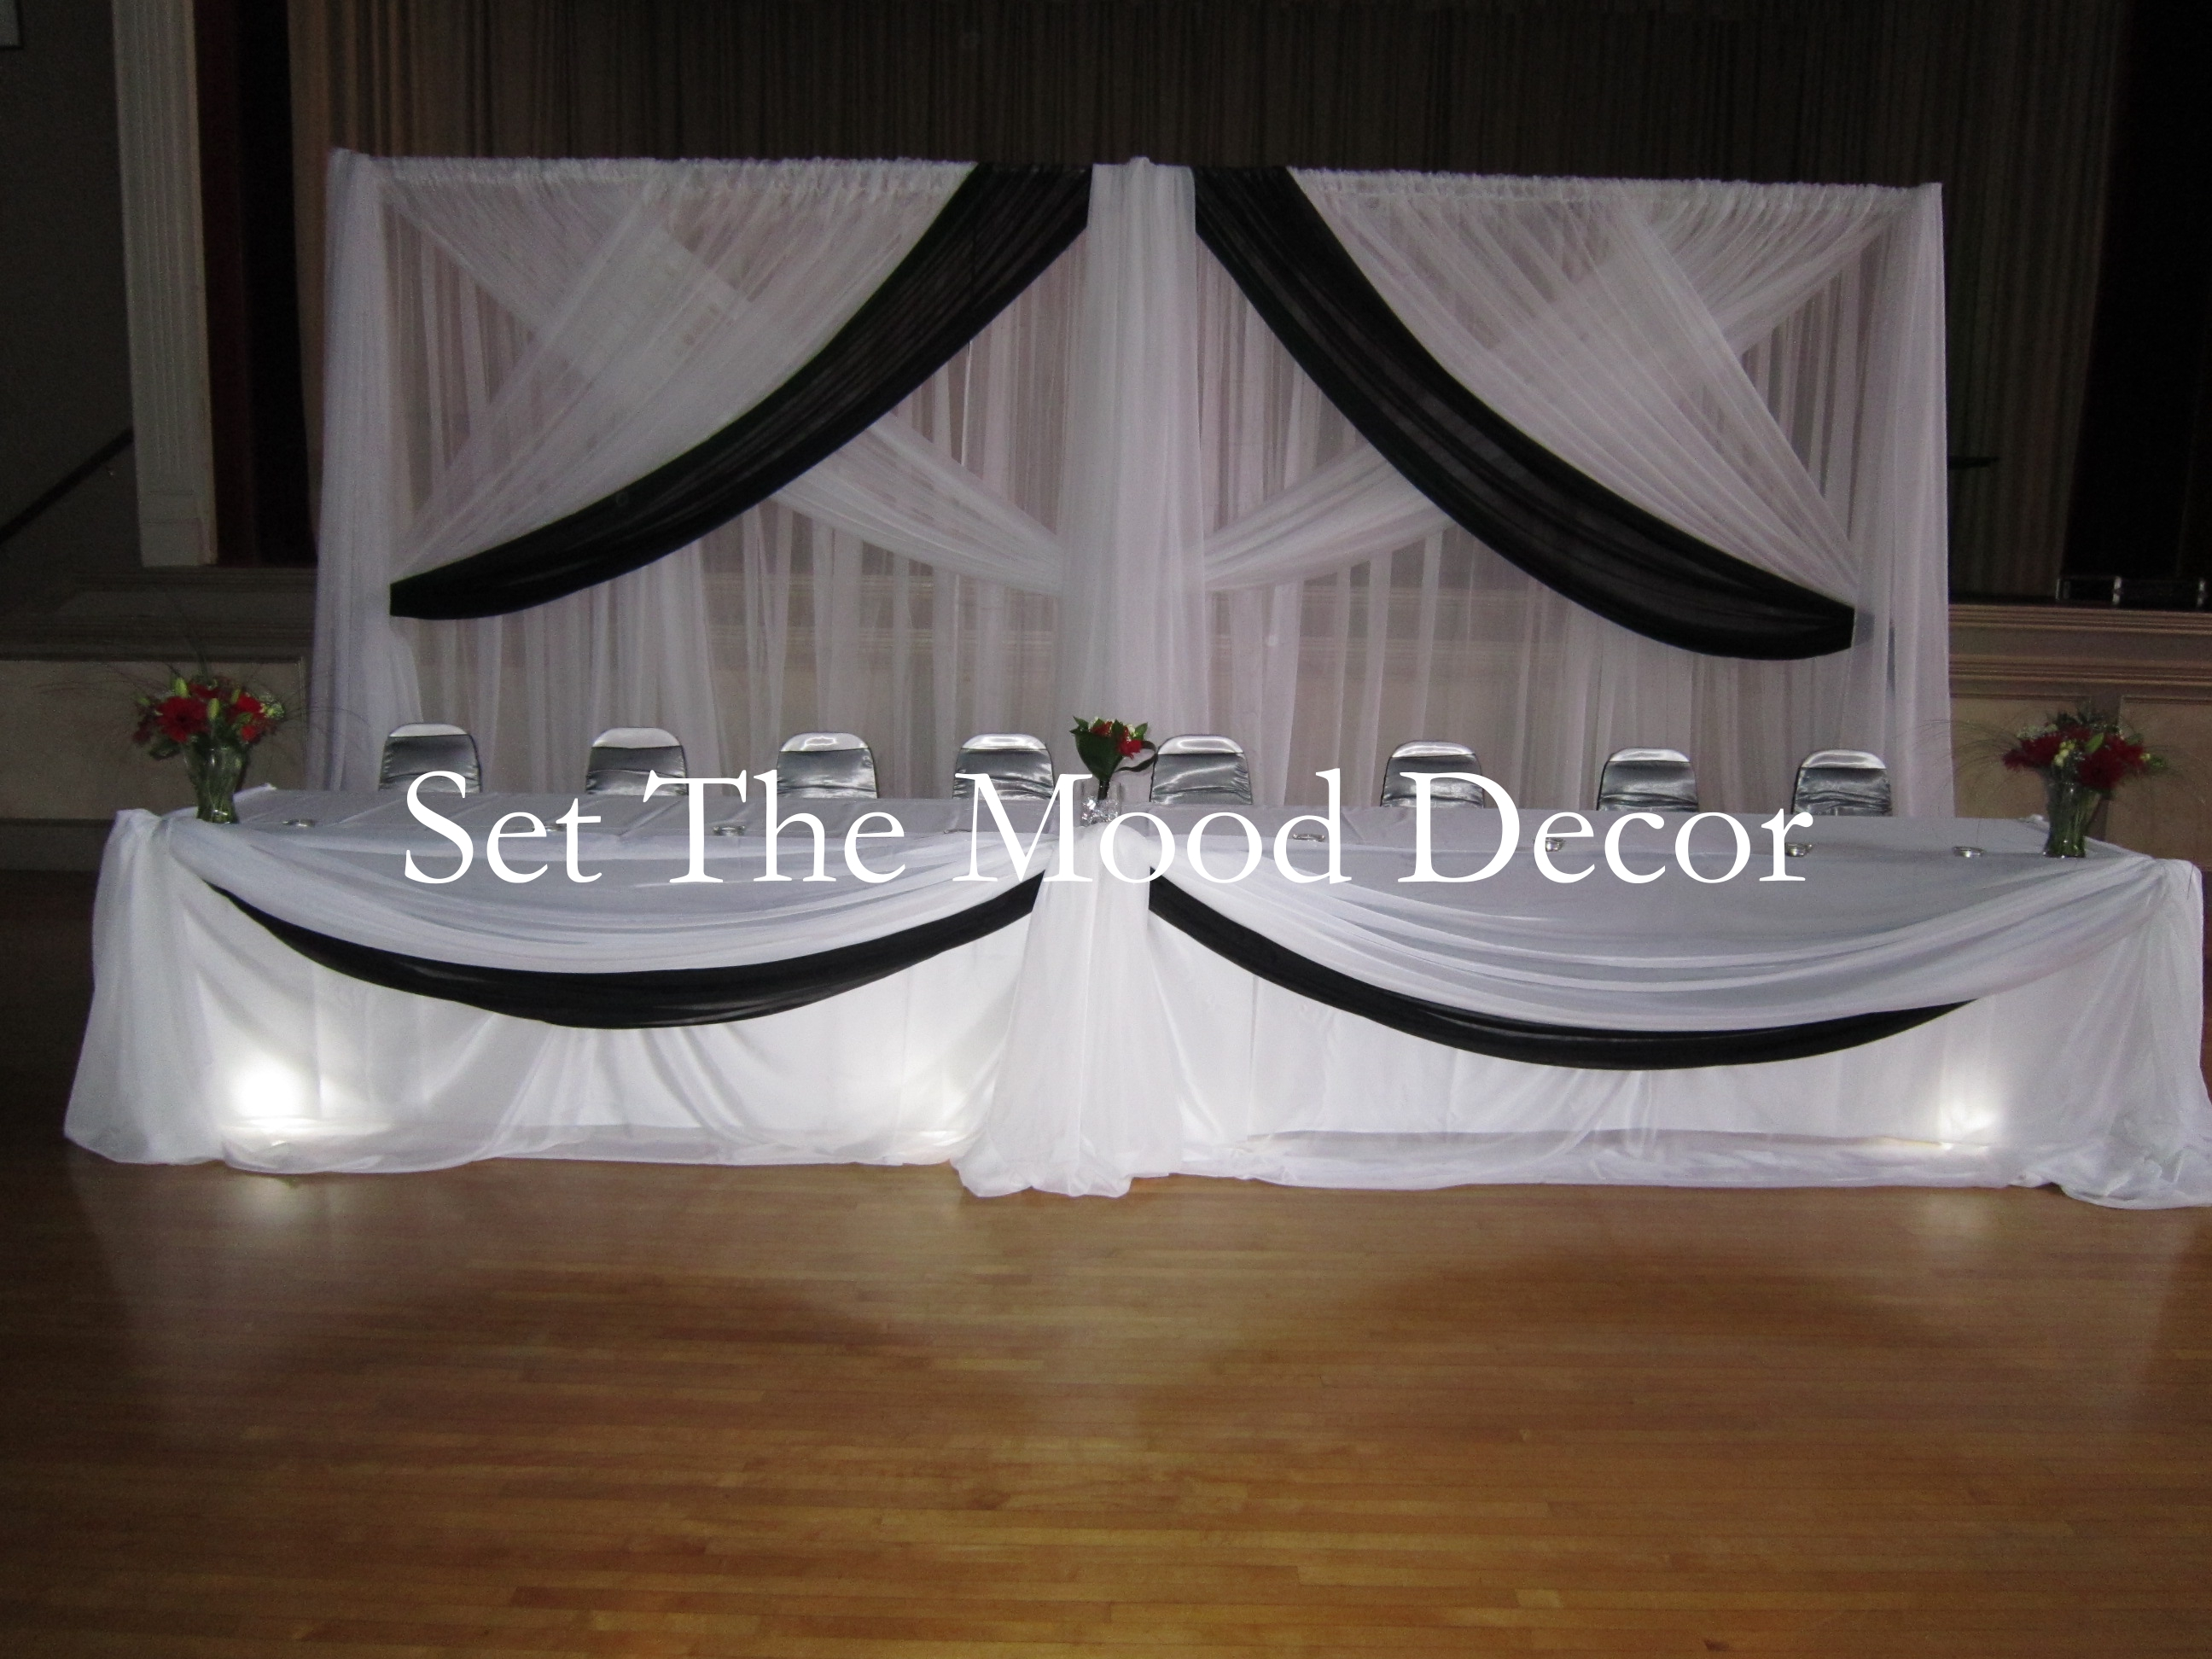 Black And White Head Table Draping Set The Mood Decor